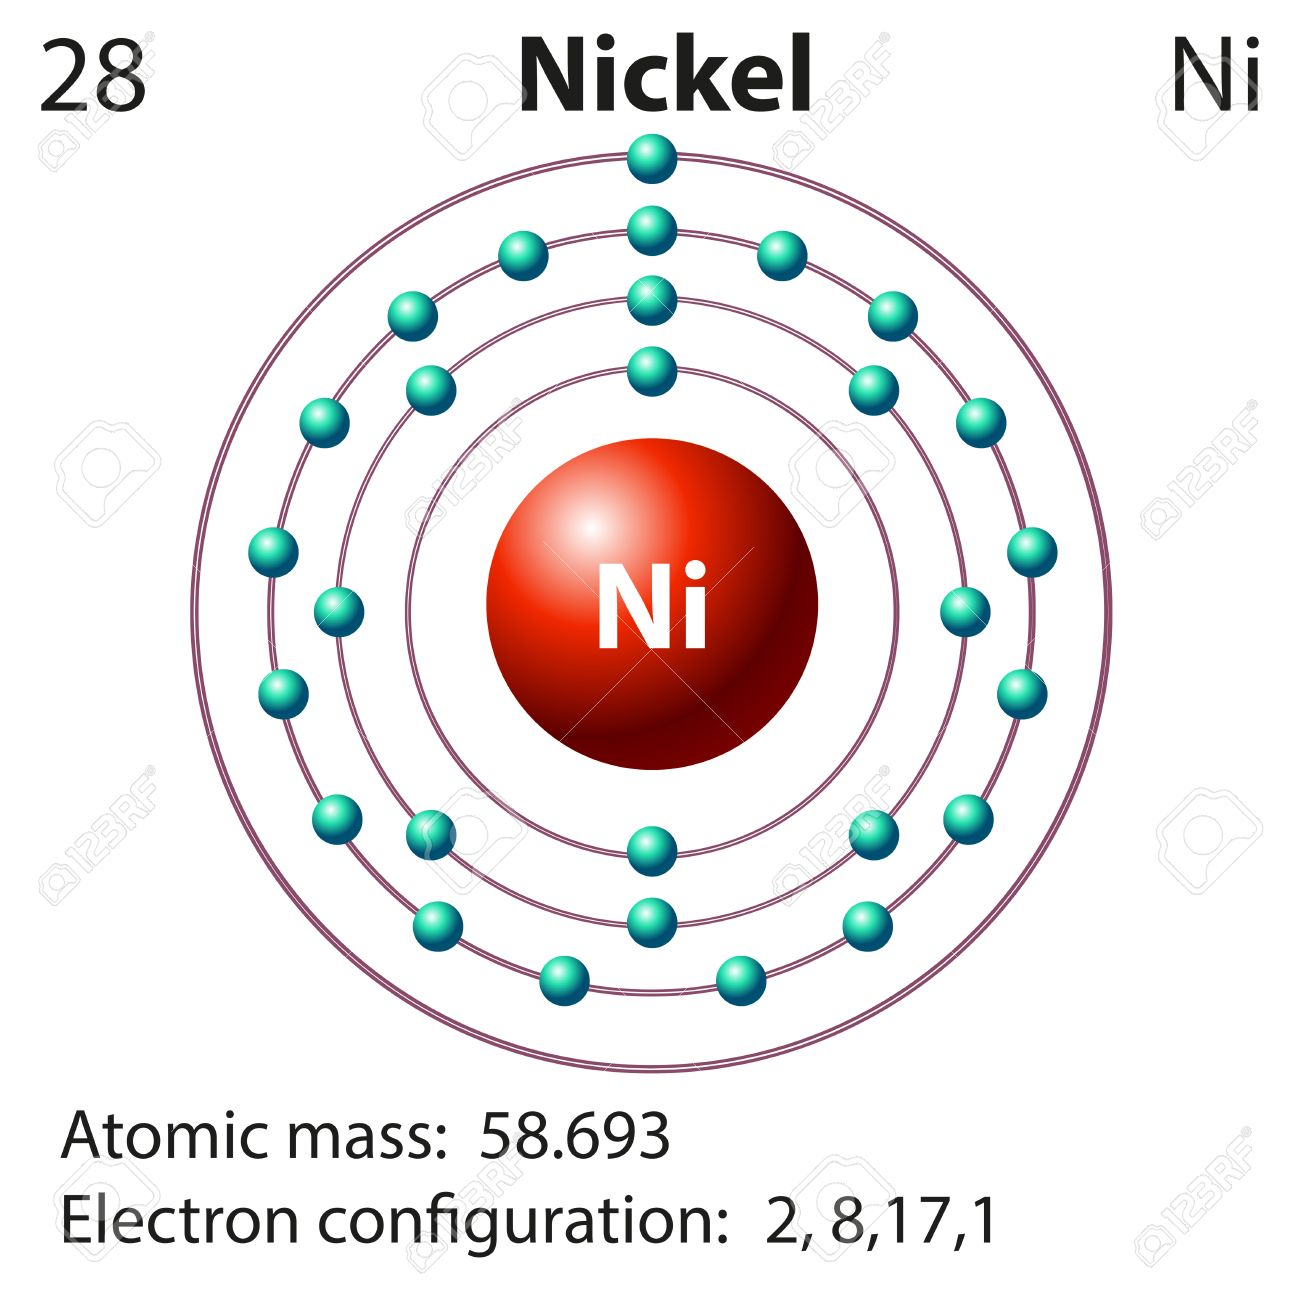 Symbol and electron diagram for nickel illustration royalty free symbol and electron diagram for nickel illustration stock vector 45062257 buycottarizona Gallery